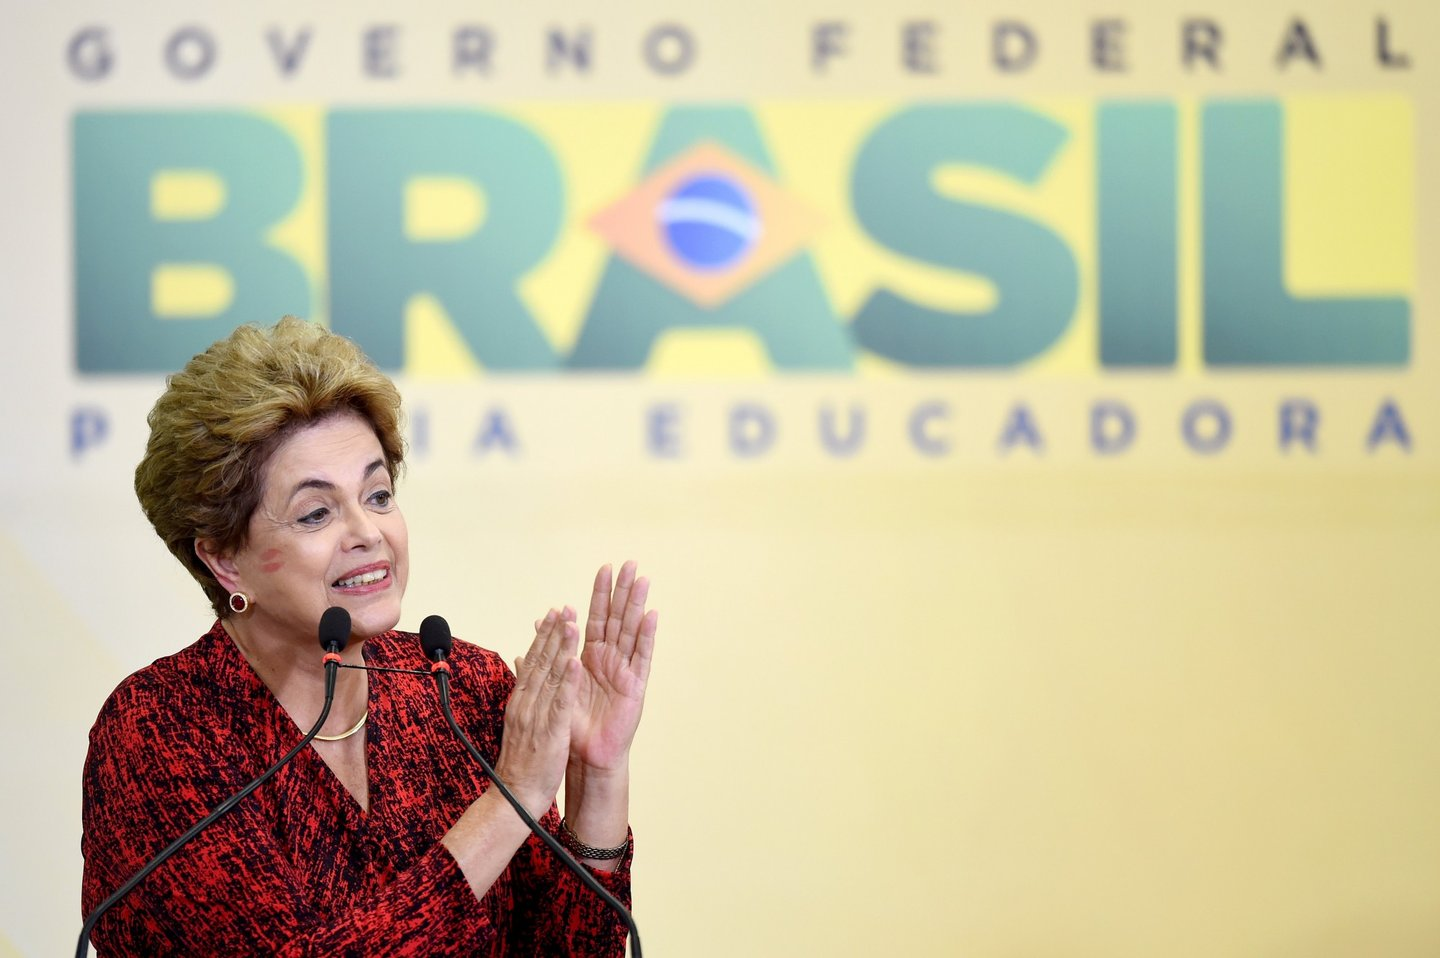 TOPSHOT - Brazilian President Dilma Rousseff during a ceremony to announce the creation of new public universities, at Planalto Palace in Brasilia, on May 9, 2016. The impeachment of Brazilian President Dilma Rousseff was thrown into confusion when Waldir Maranhao, the interim speaker of the lower house of Congress annulled on May 9, 2016 an April vote by lawmakers to launch the process. He wrote in an order that a new vote should take place on whether to impeach Rousseff. / AFP / EVARISTO SA (Photo credit should read EVARISTO SA/AFP/Getty Images)